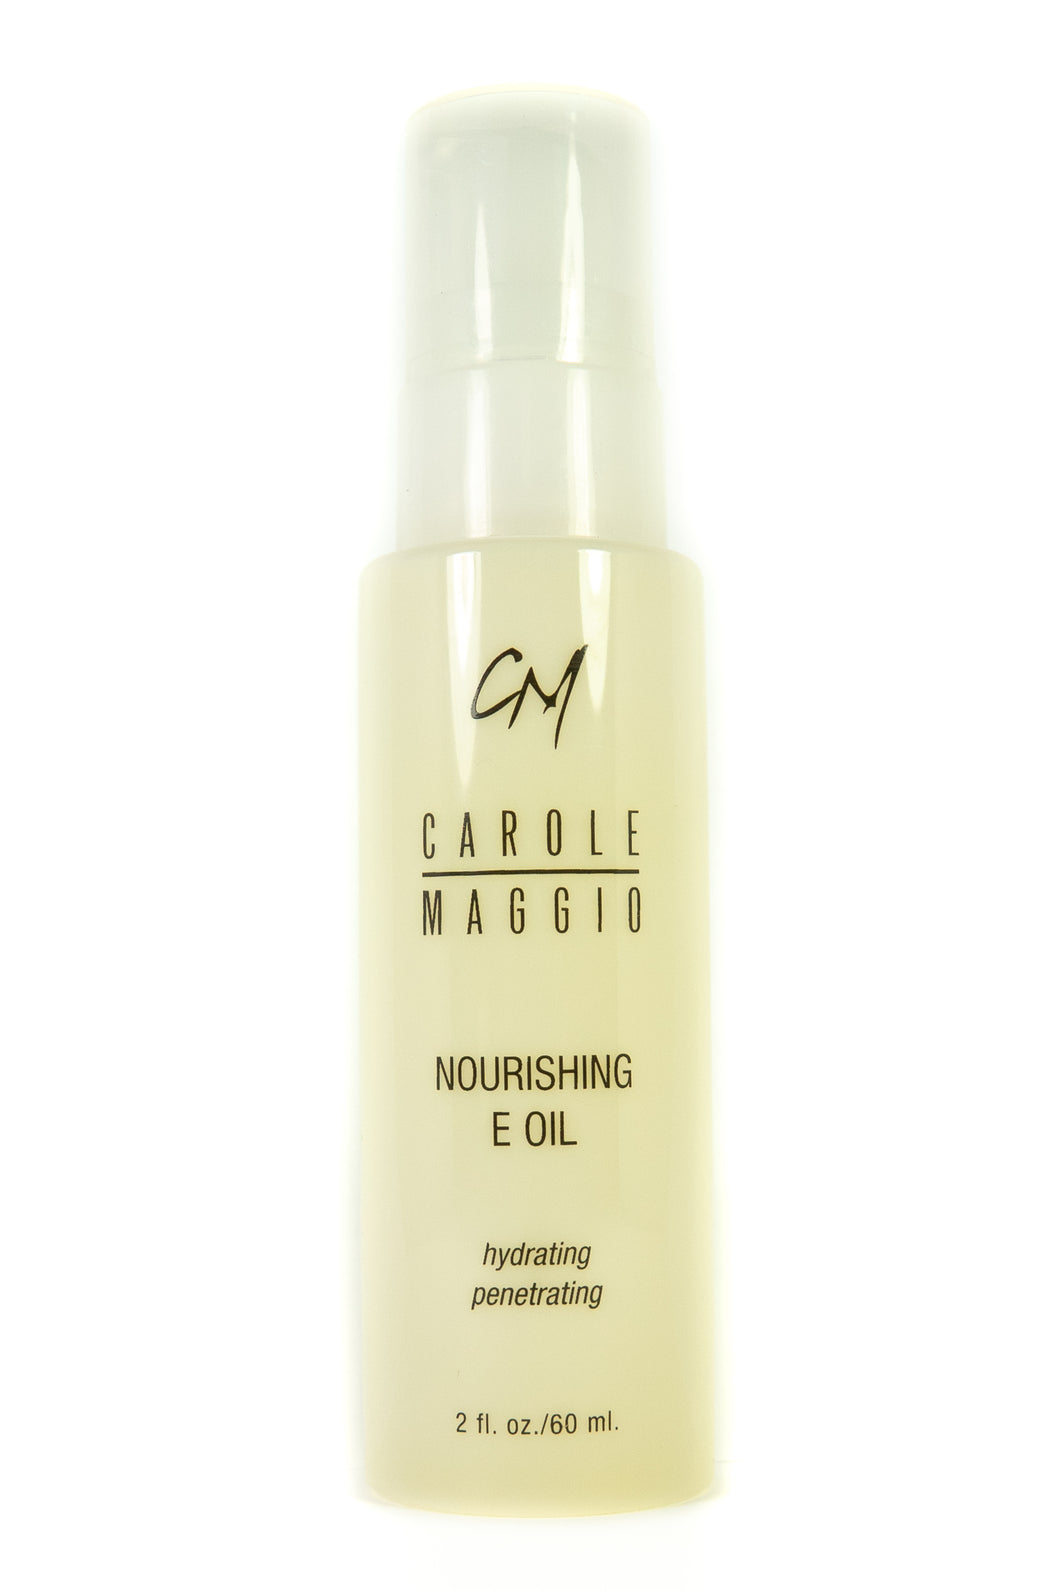 Nourishing E Oil